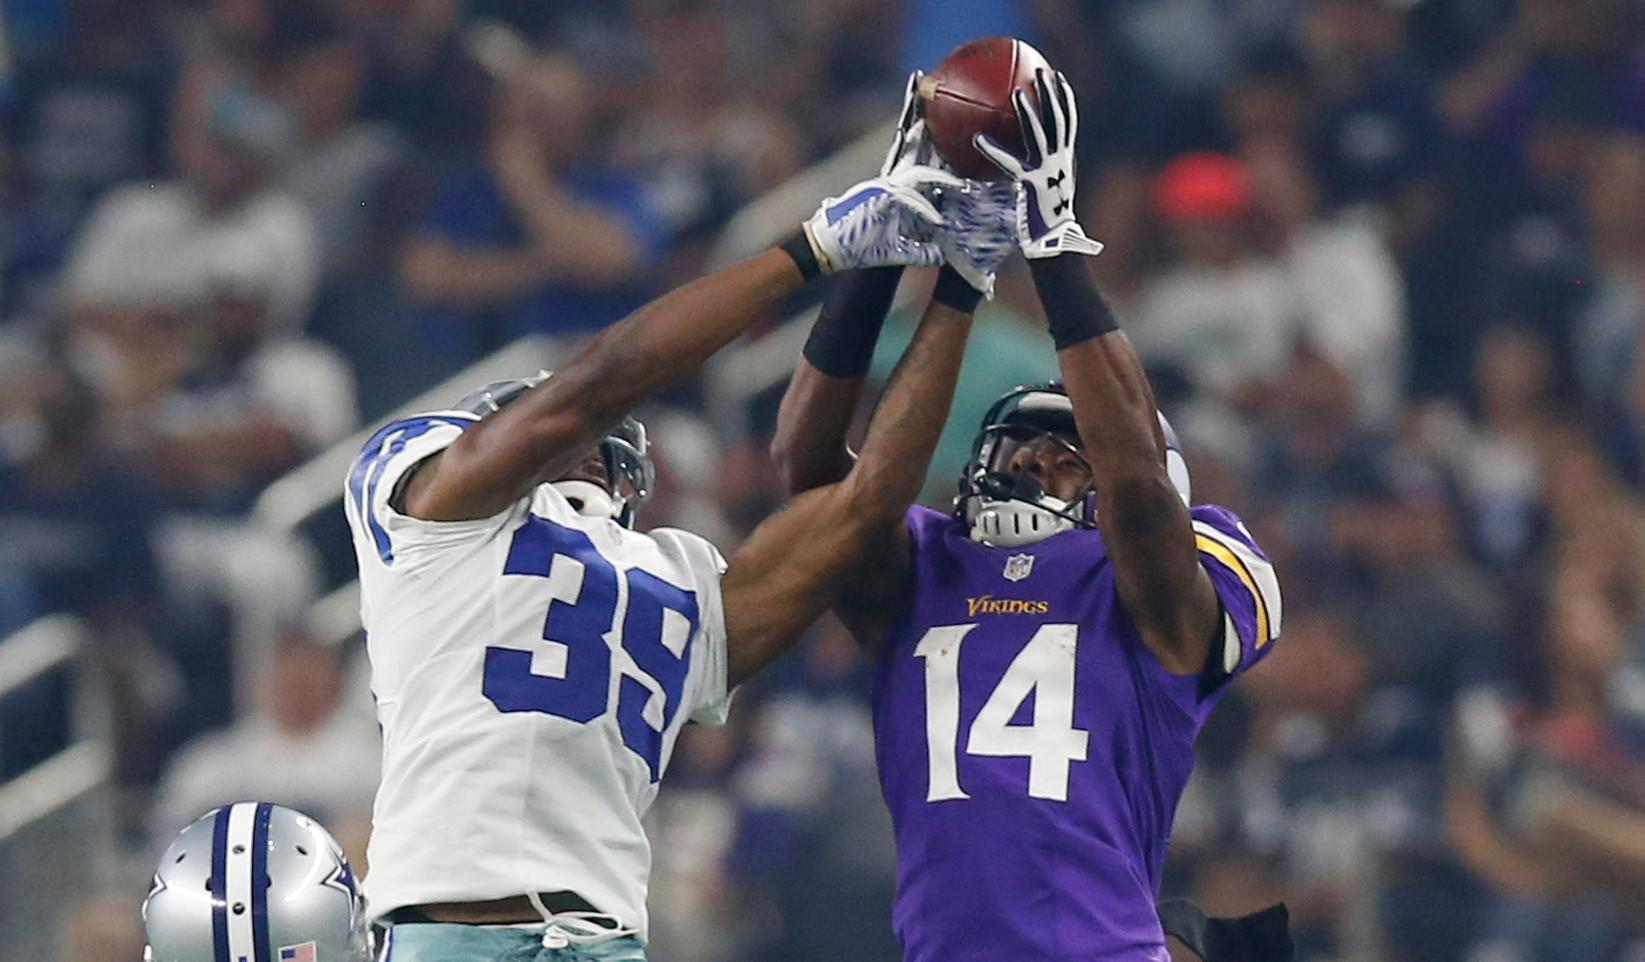 Diggs shows first preseason flashes as WR in win over Dallas